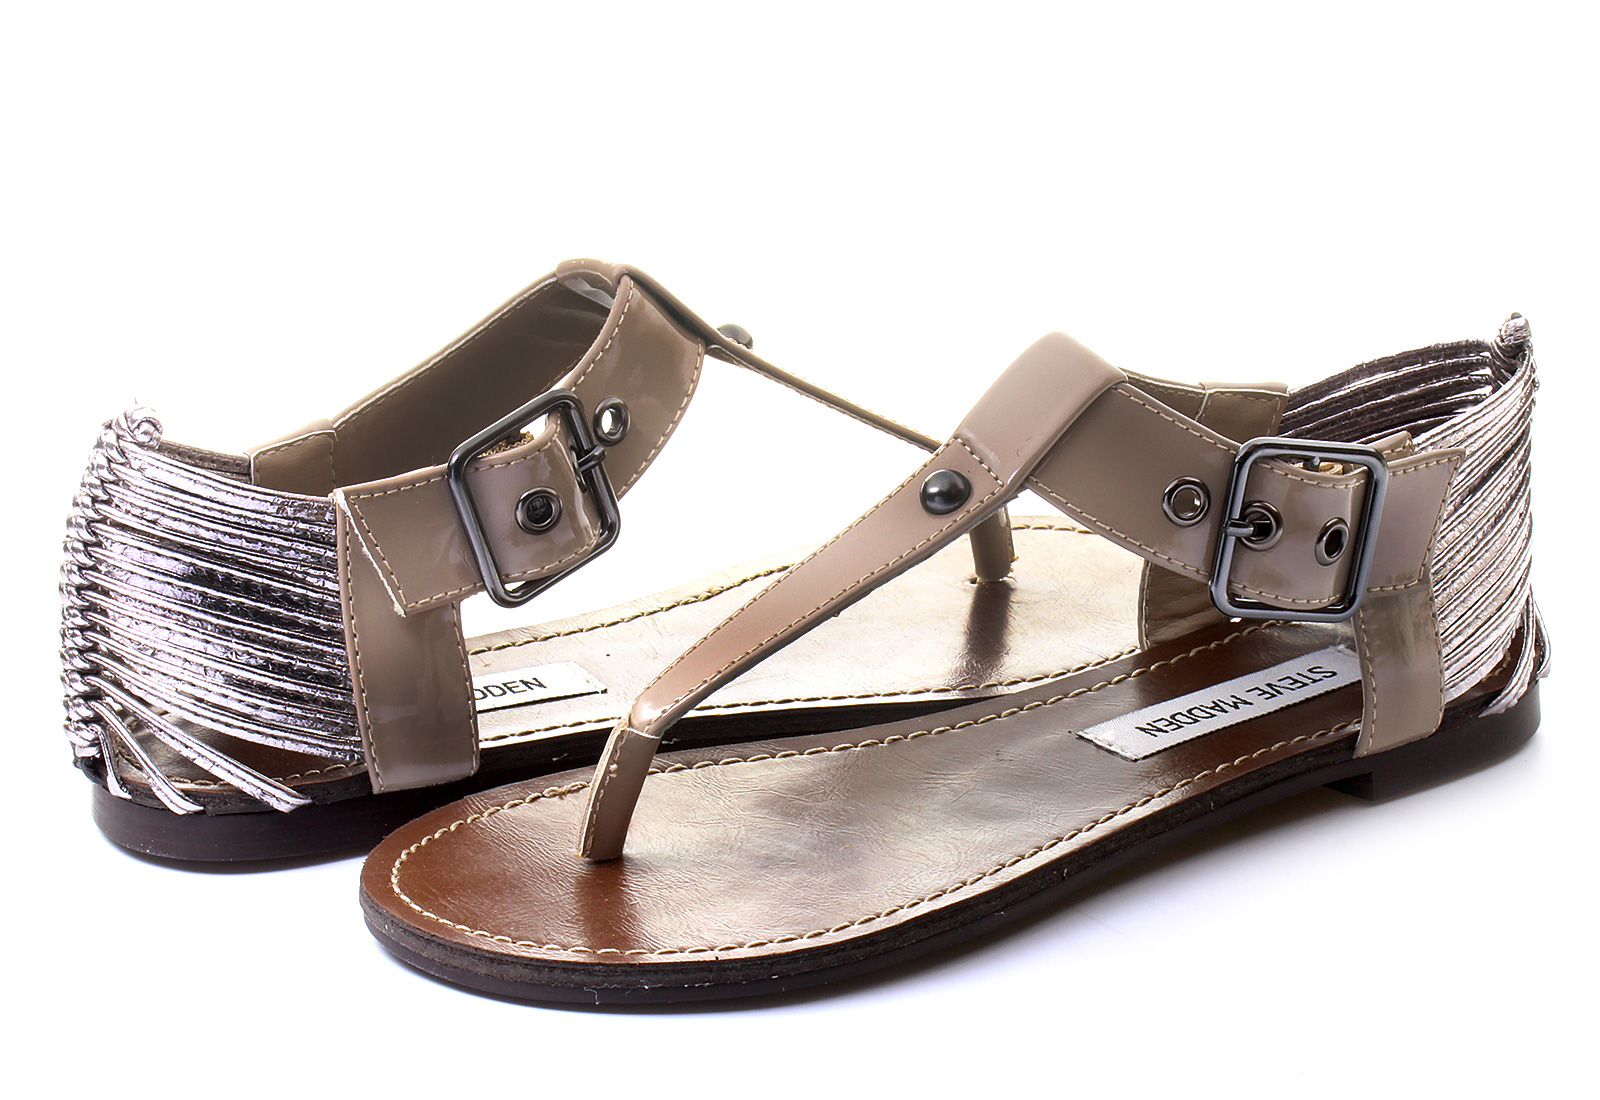 code of ethics steve madden The best 3 verified steve madden coupons, promo codes, discounts, and deals for august 2018 most popular: free two day shipping on $50+ order, sign up for emails and receive 20% off your next order.